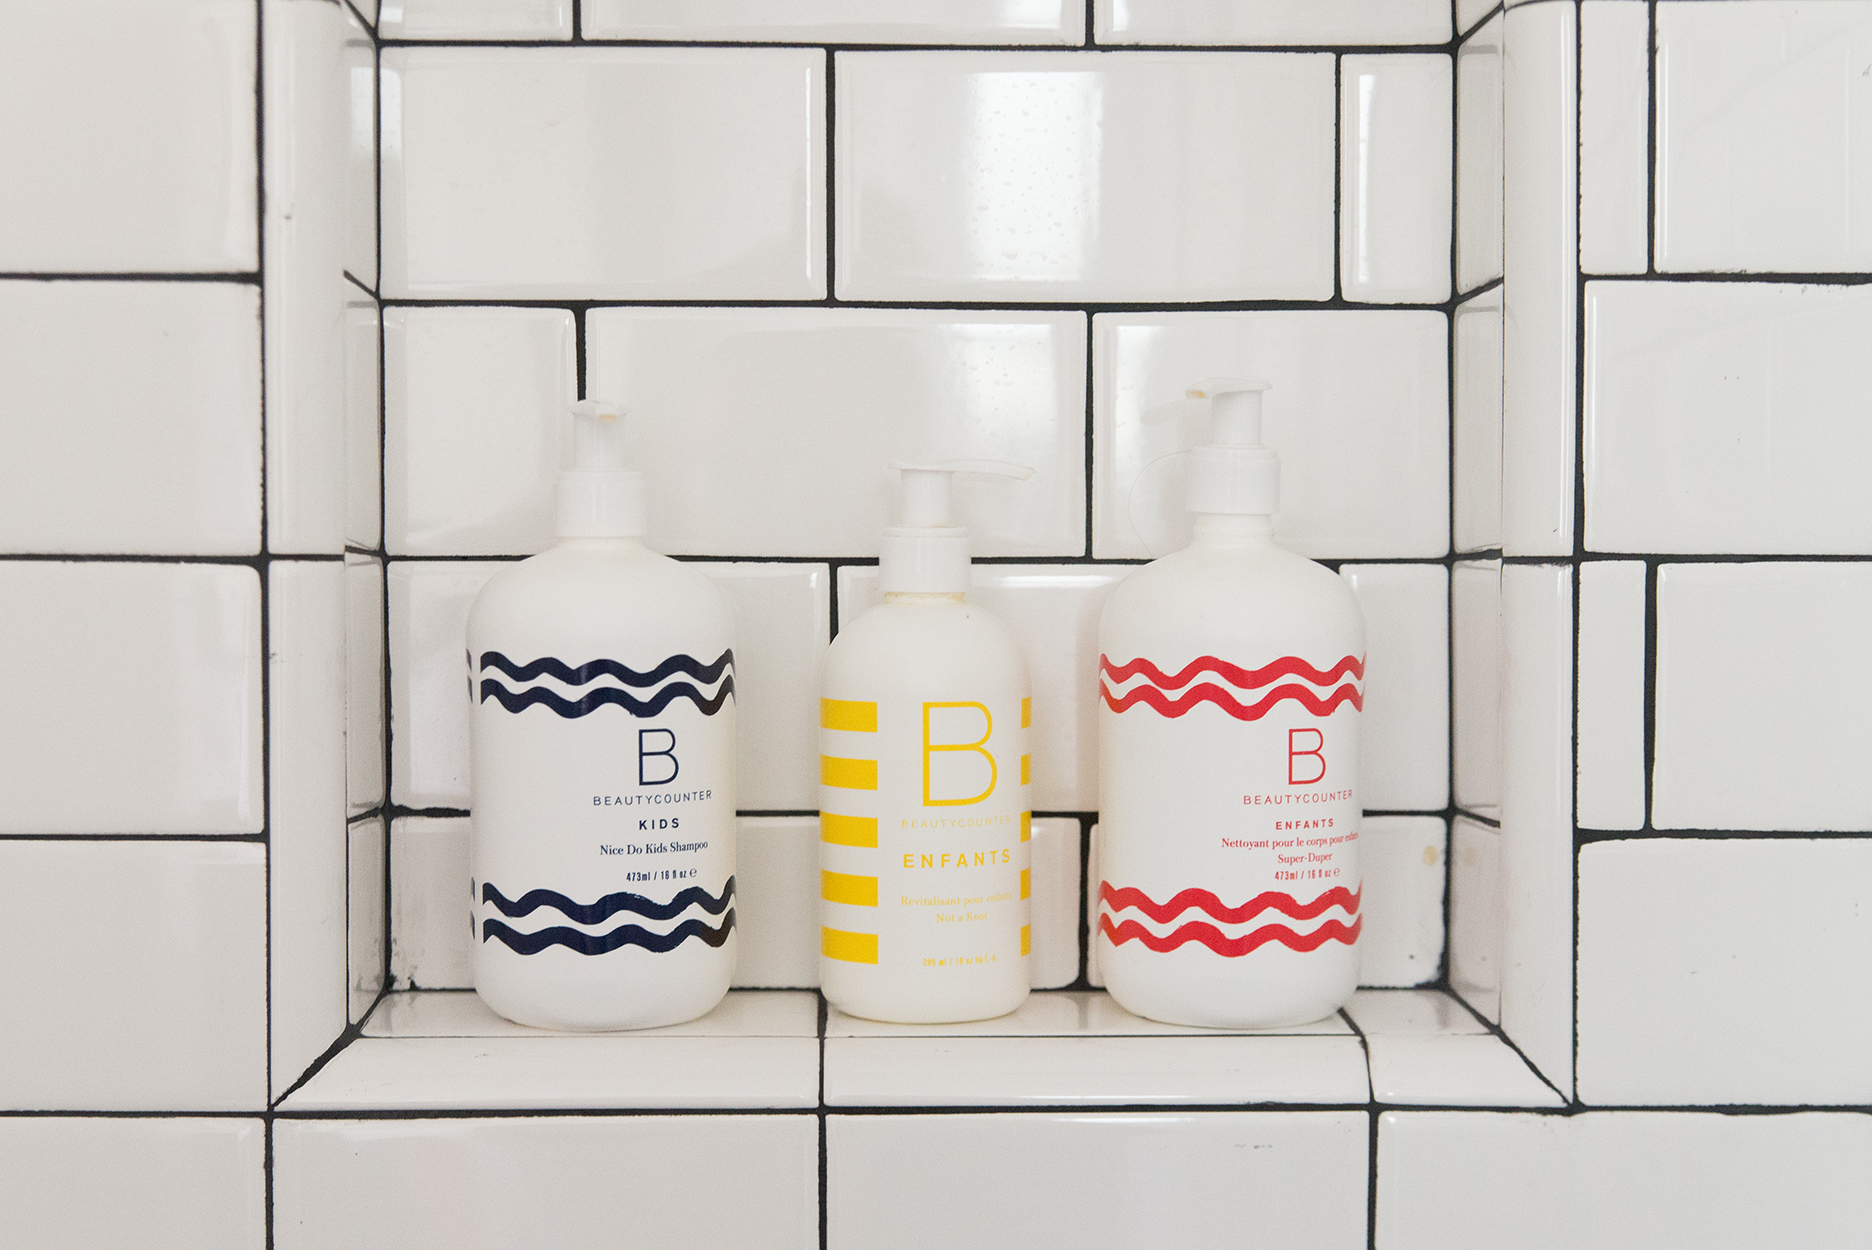 beauty counter shampoo and body soap in a white tiled shower